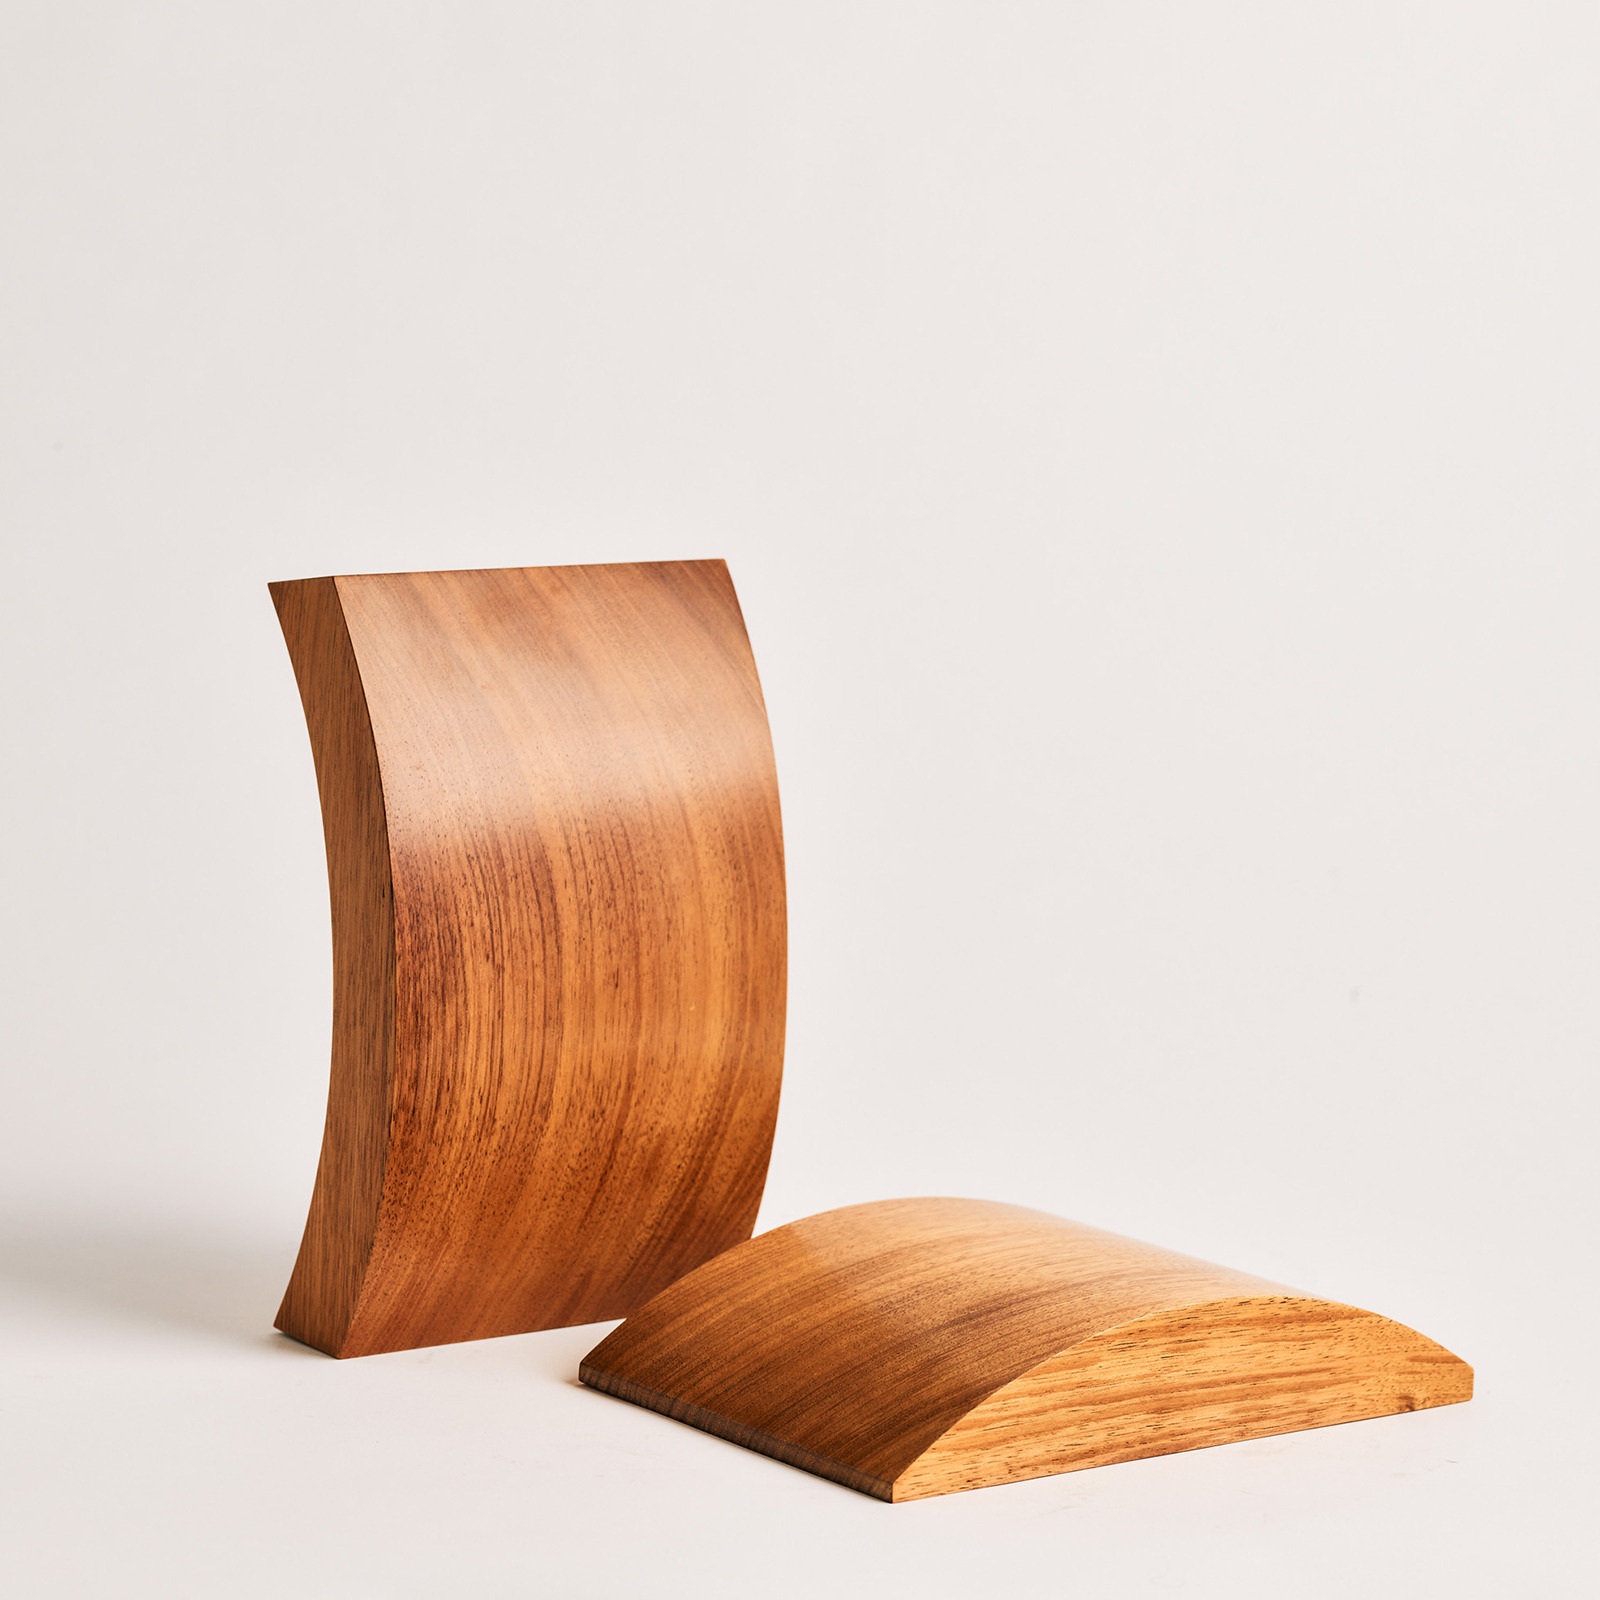 Timber Forms In Tasmanian Blackwood And Limited Edition By Zachary Frankel 7